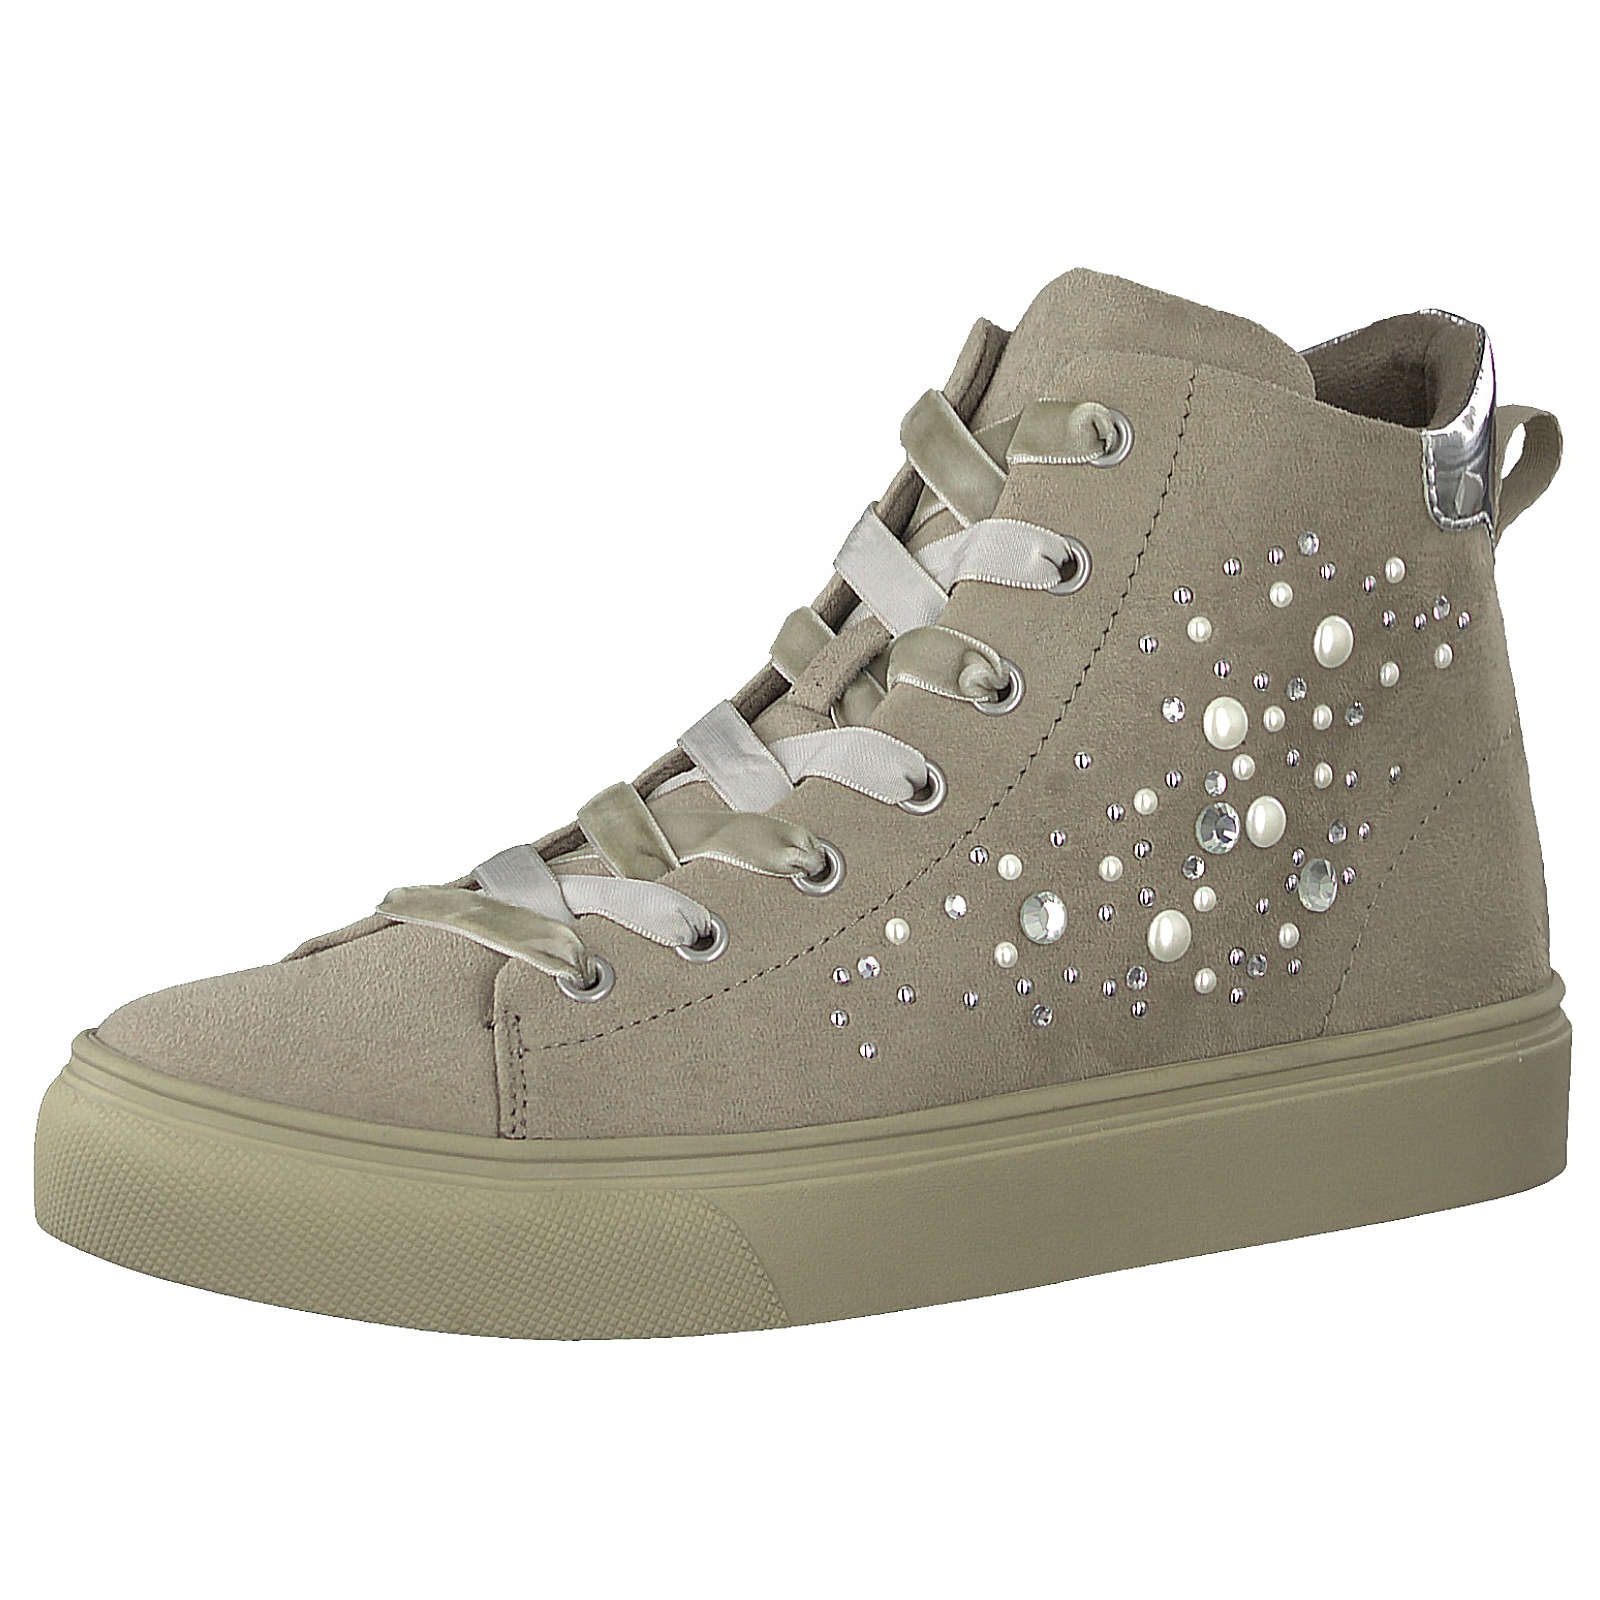 s.Oliver Sneakers High sand Damen Gr. 37